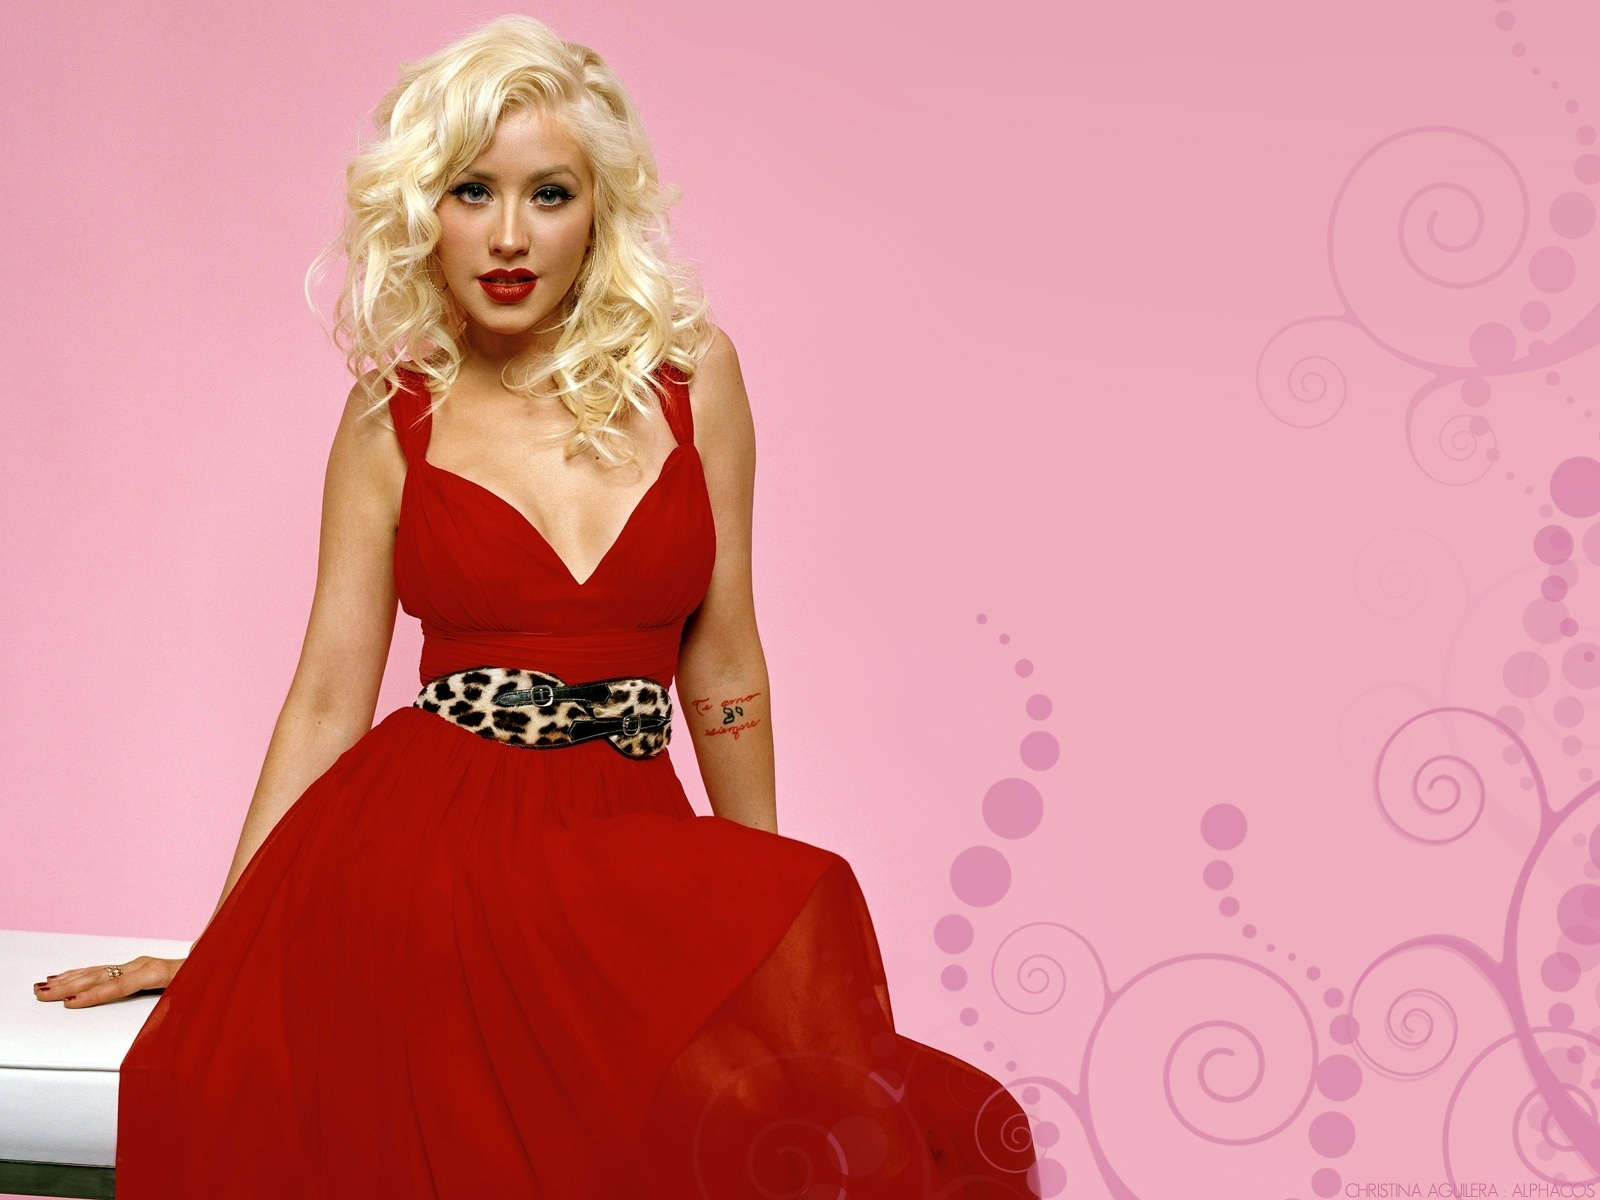 Bollywood Singers Hd Wallpapers High Resolution Wallpaper Christina Aguilera Hd Wallpapers